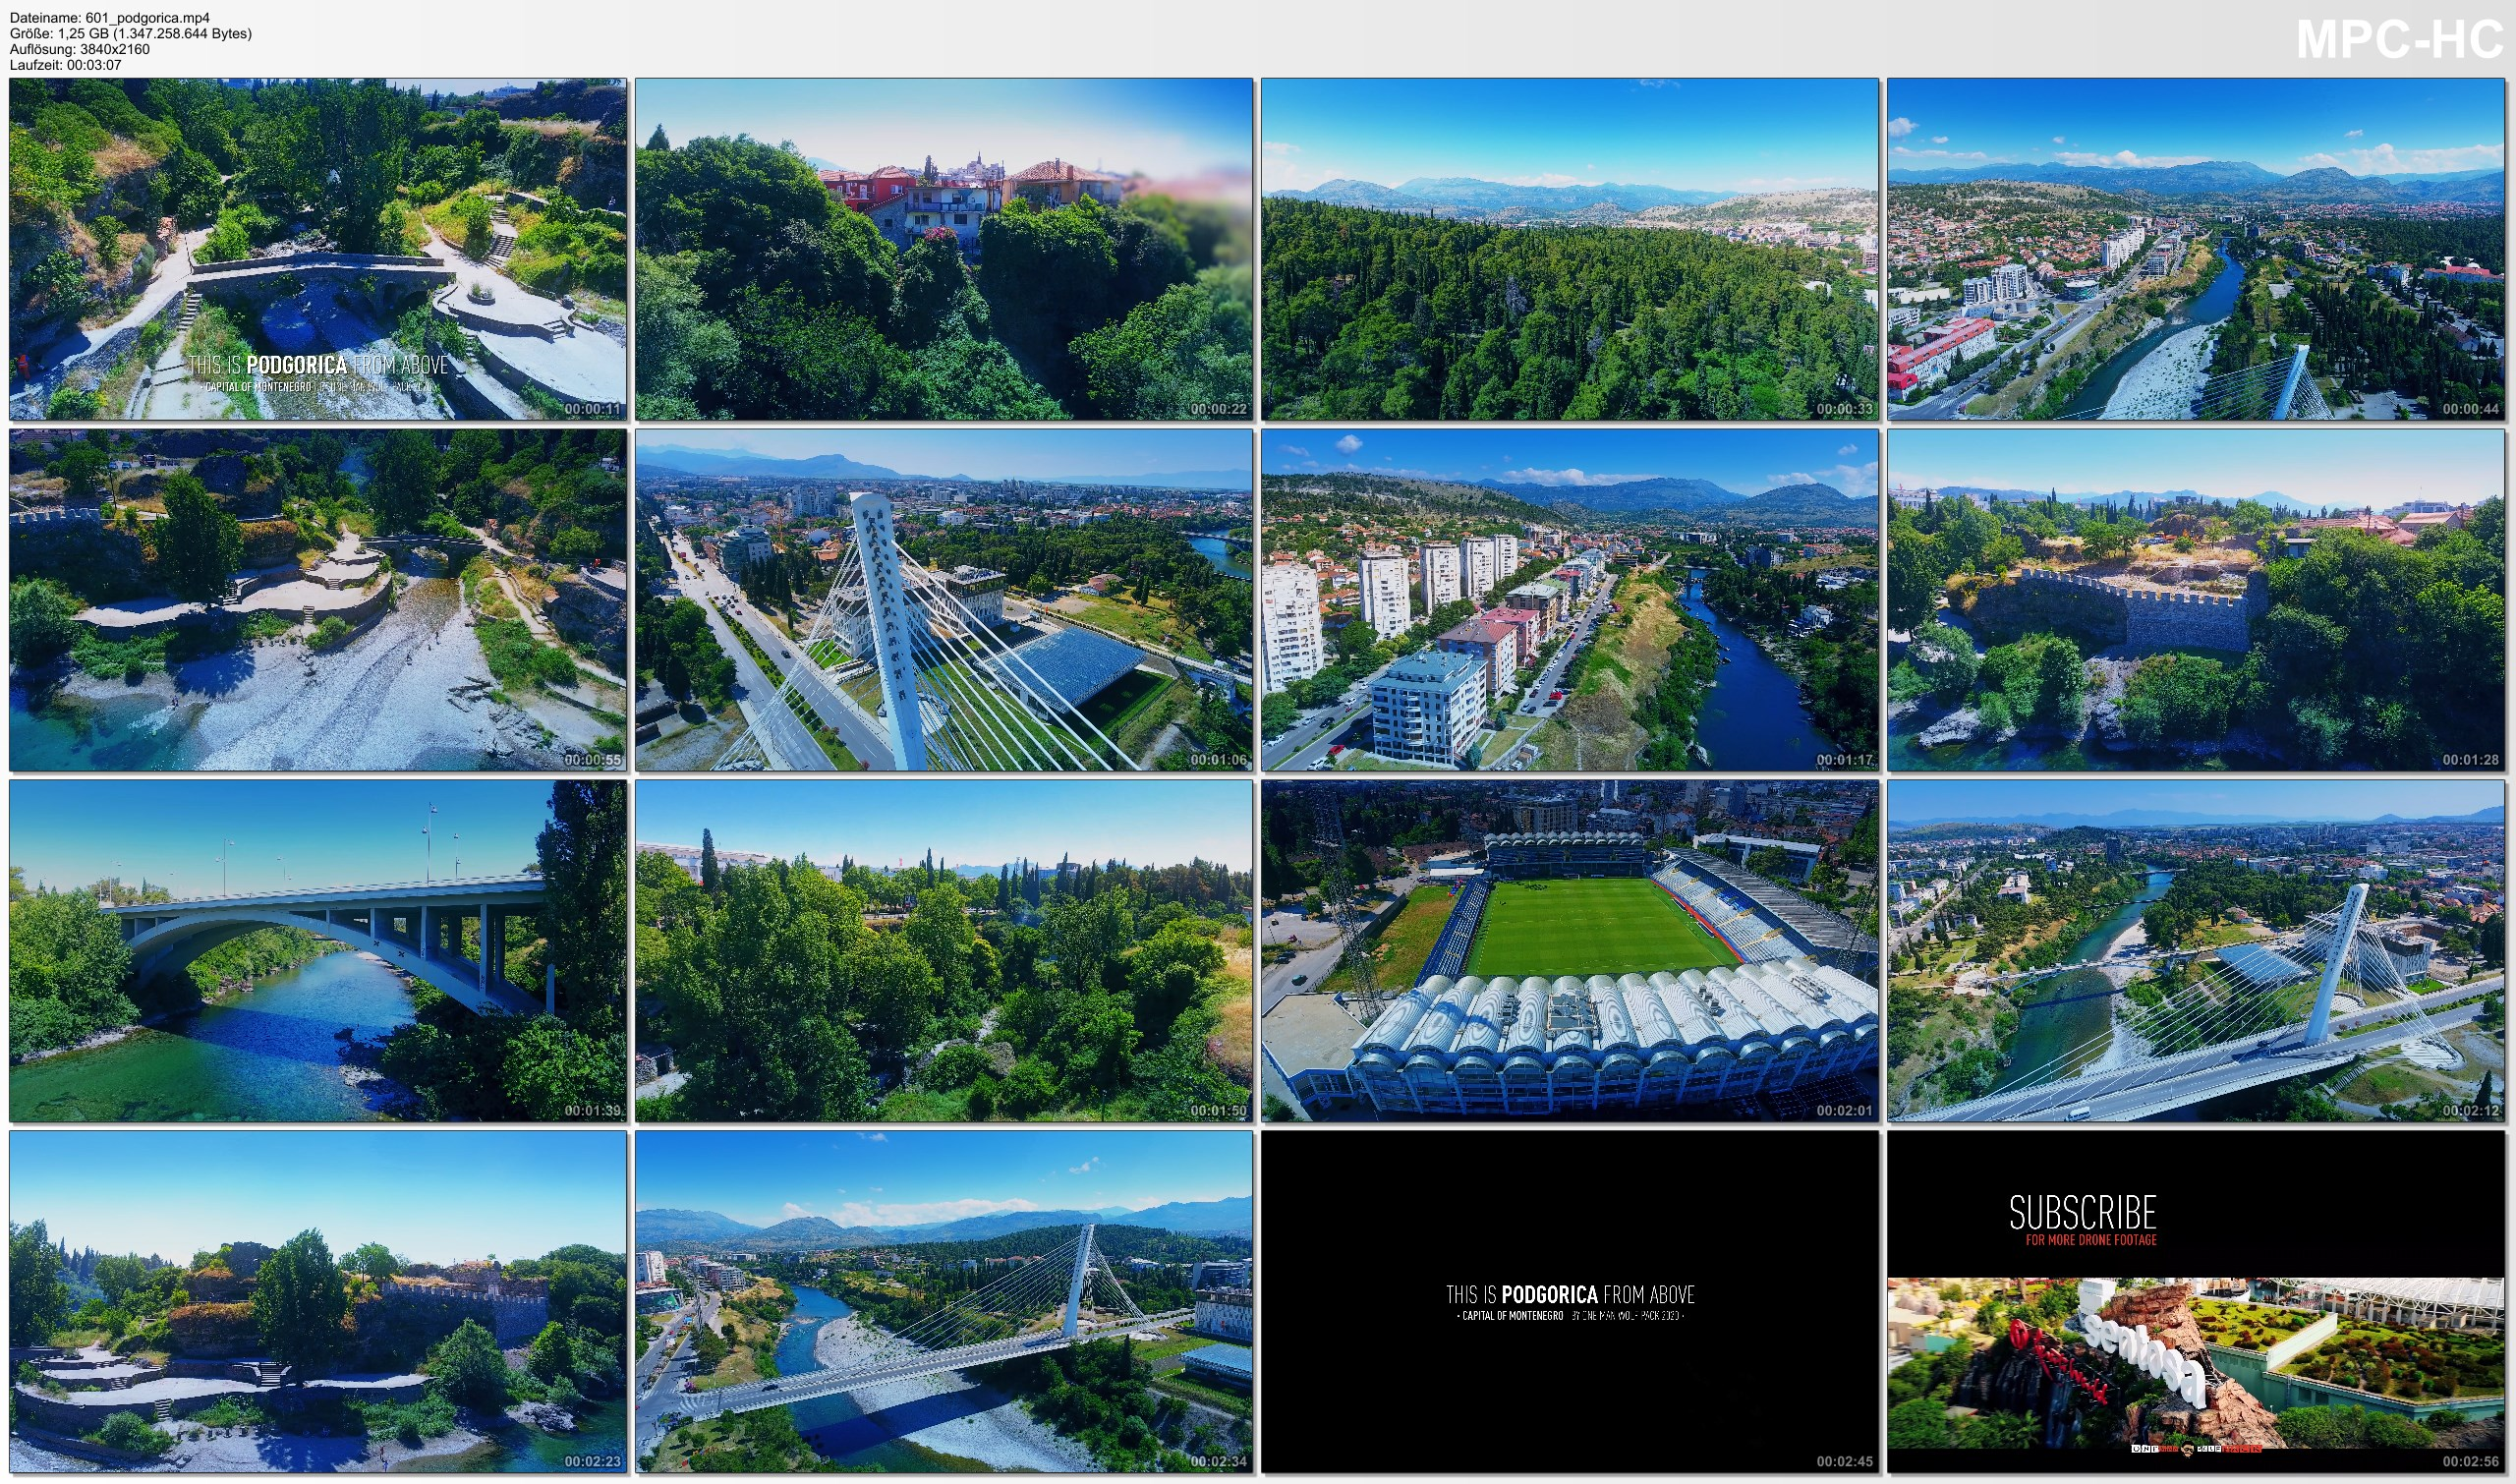 Drone Pictures from Video 【4K】Podgorica from Above - Capital of MONTENEGRO 2020   Cinematic Wolf Aerial™ Drone Film